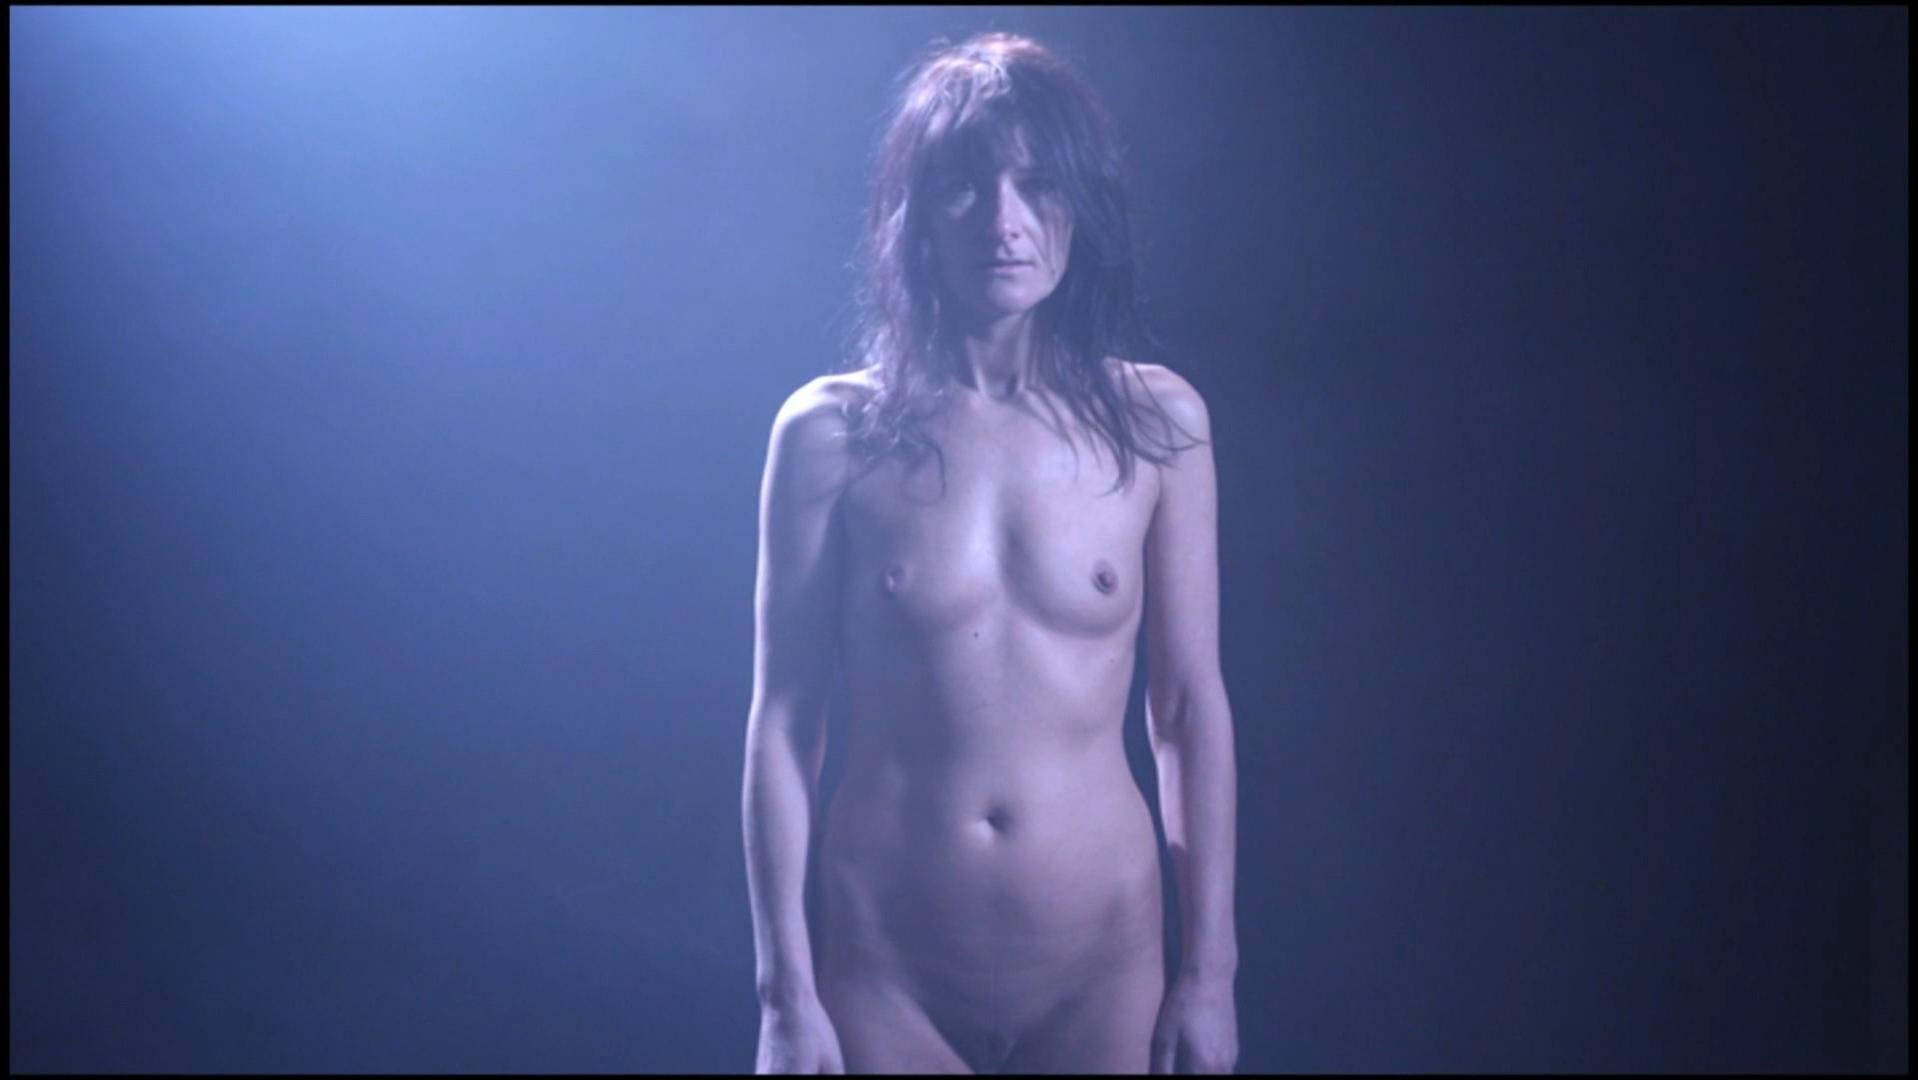 Irene Holzfurtner nude - No Reason (2010)